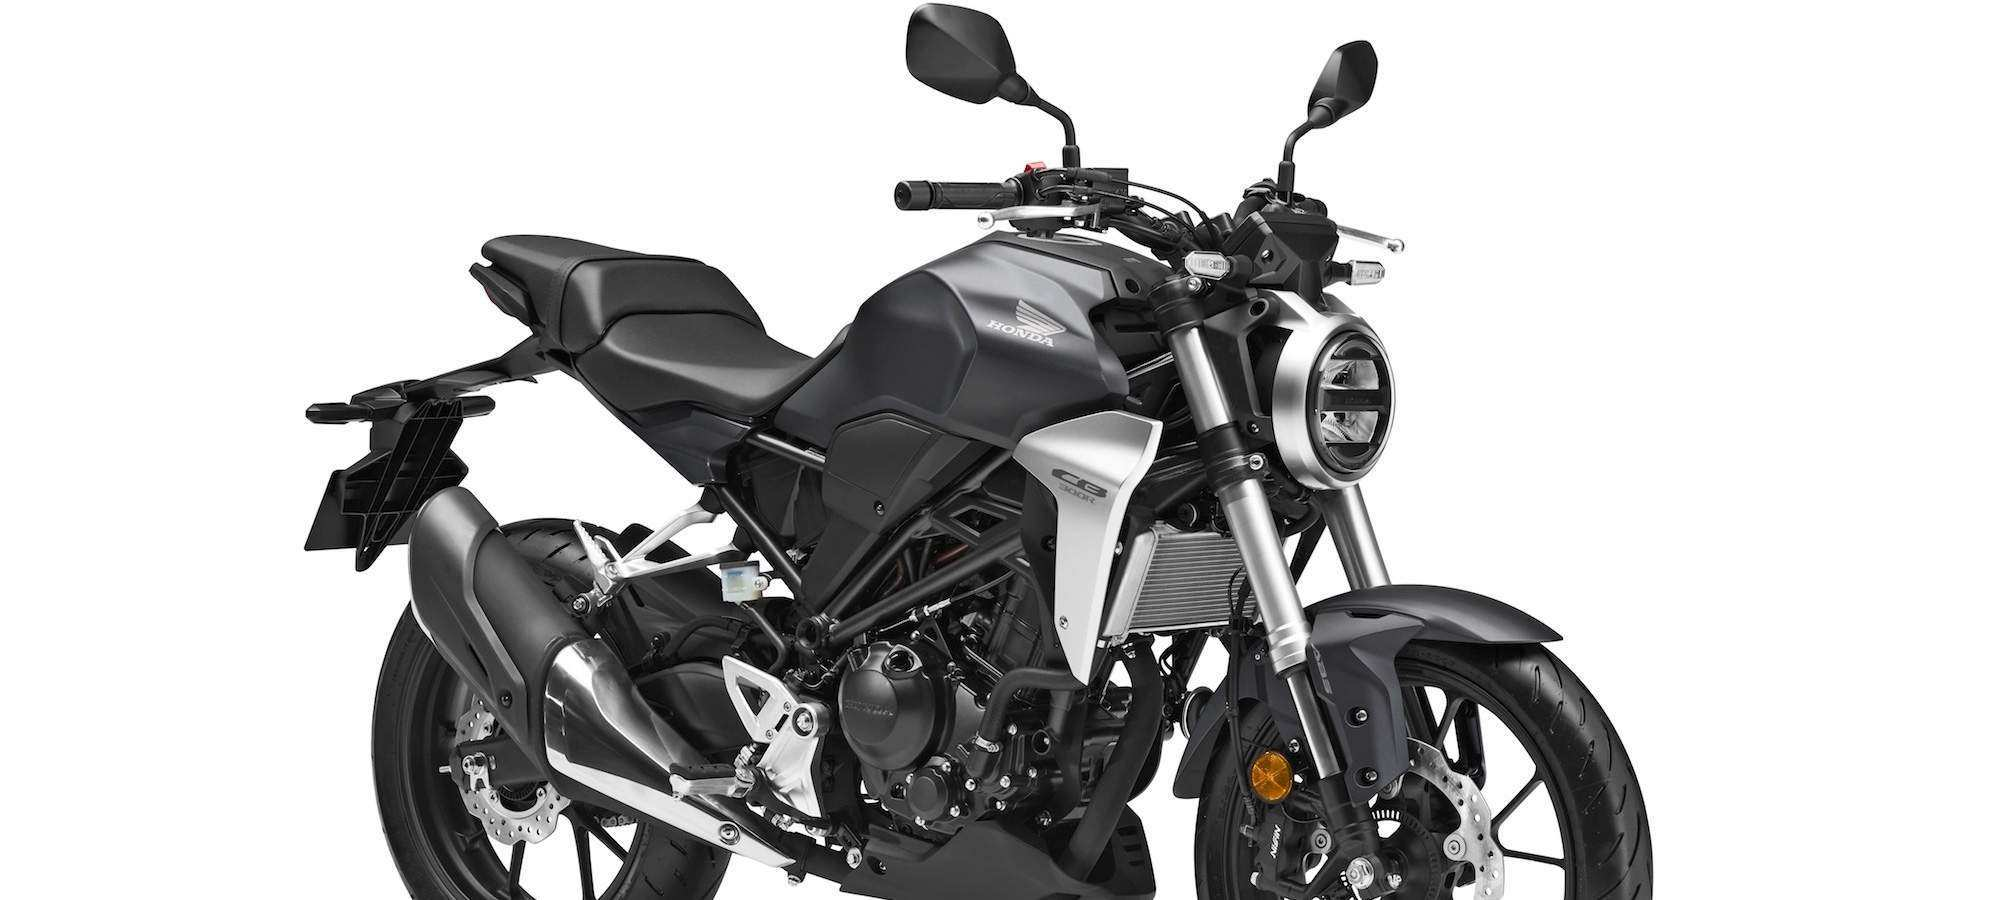 69 New 2019 Honda 300R Price and Review by 2019 Honda 300R